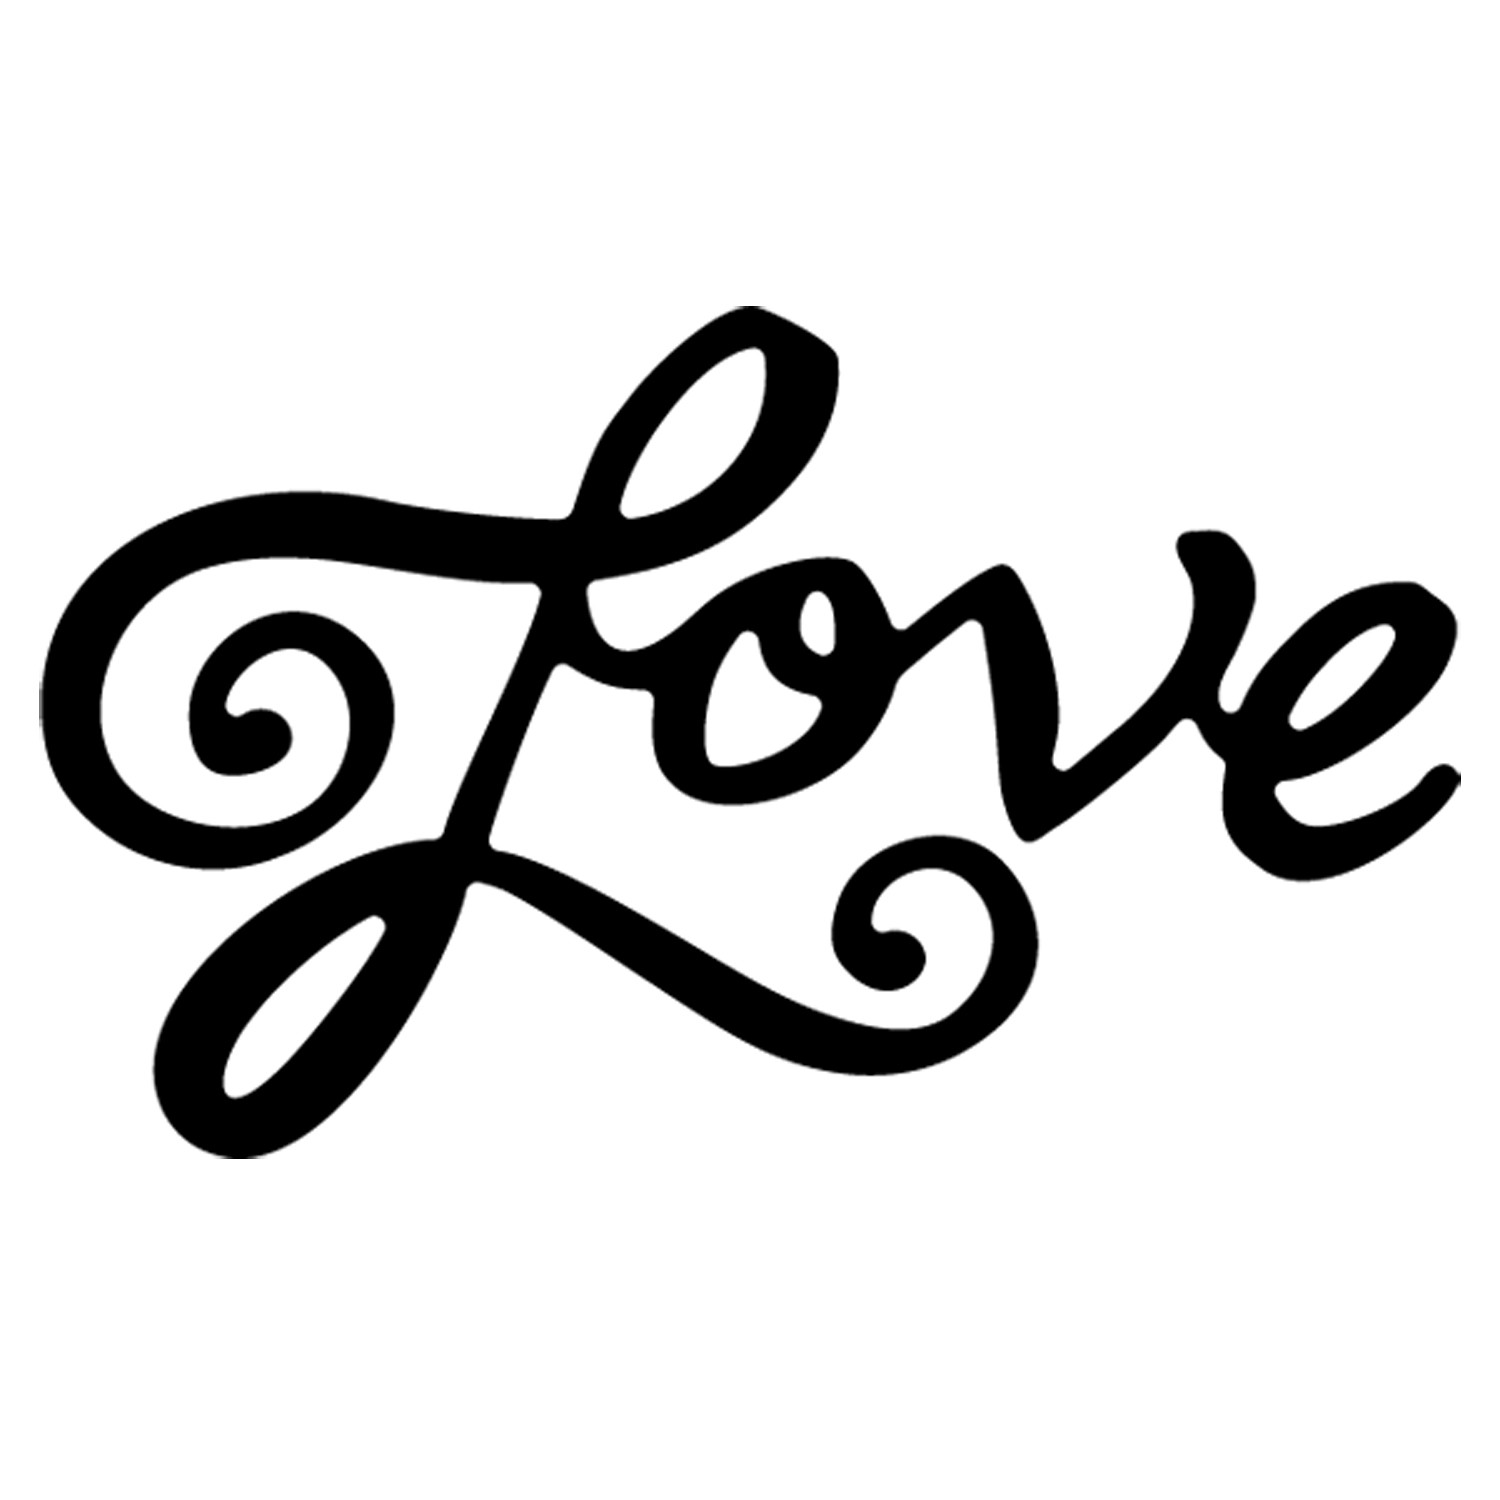 The Word Love In Cursive   Clipart Panda   Free Clipart Images